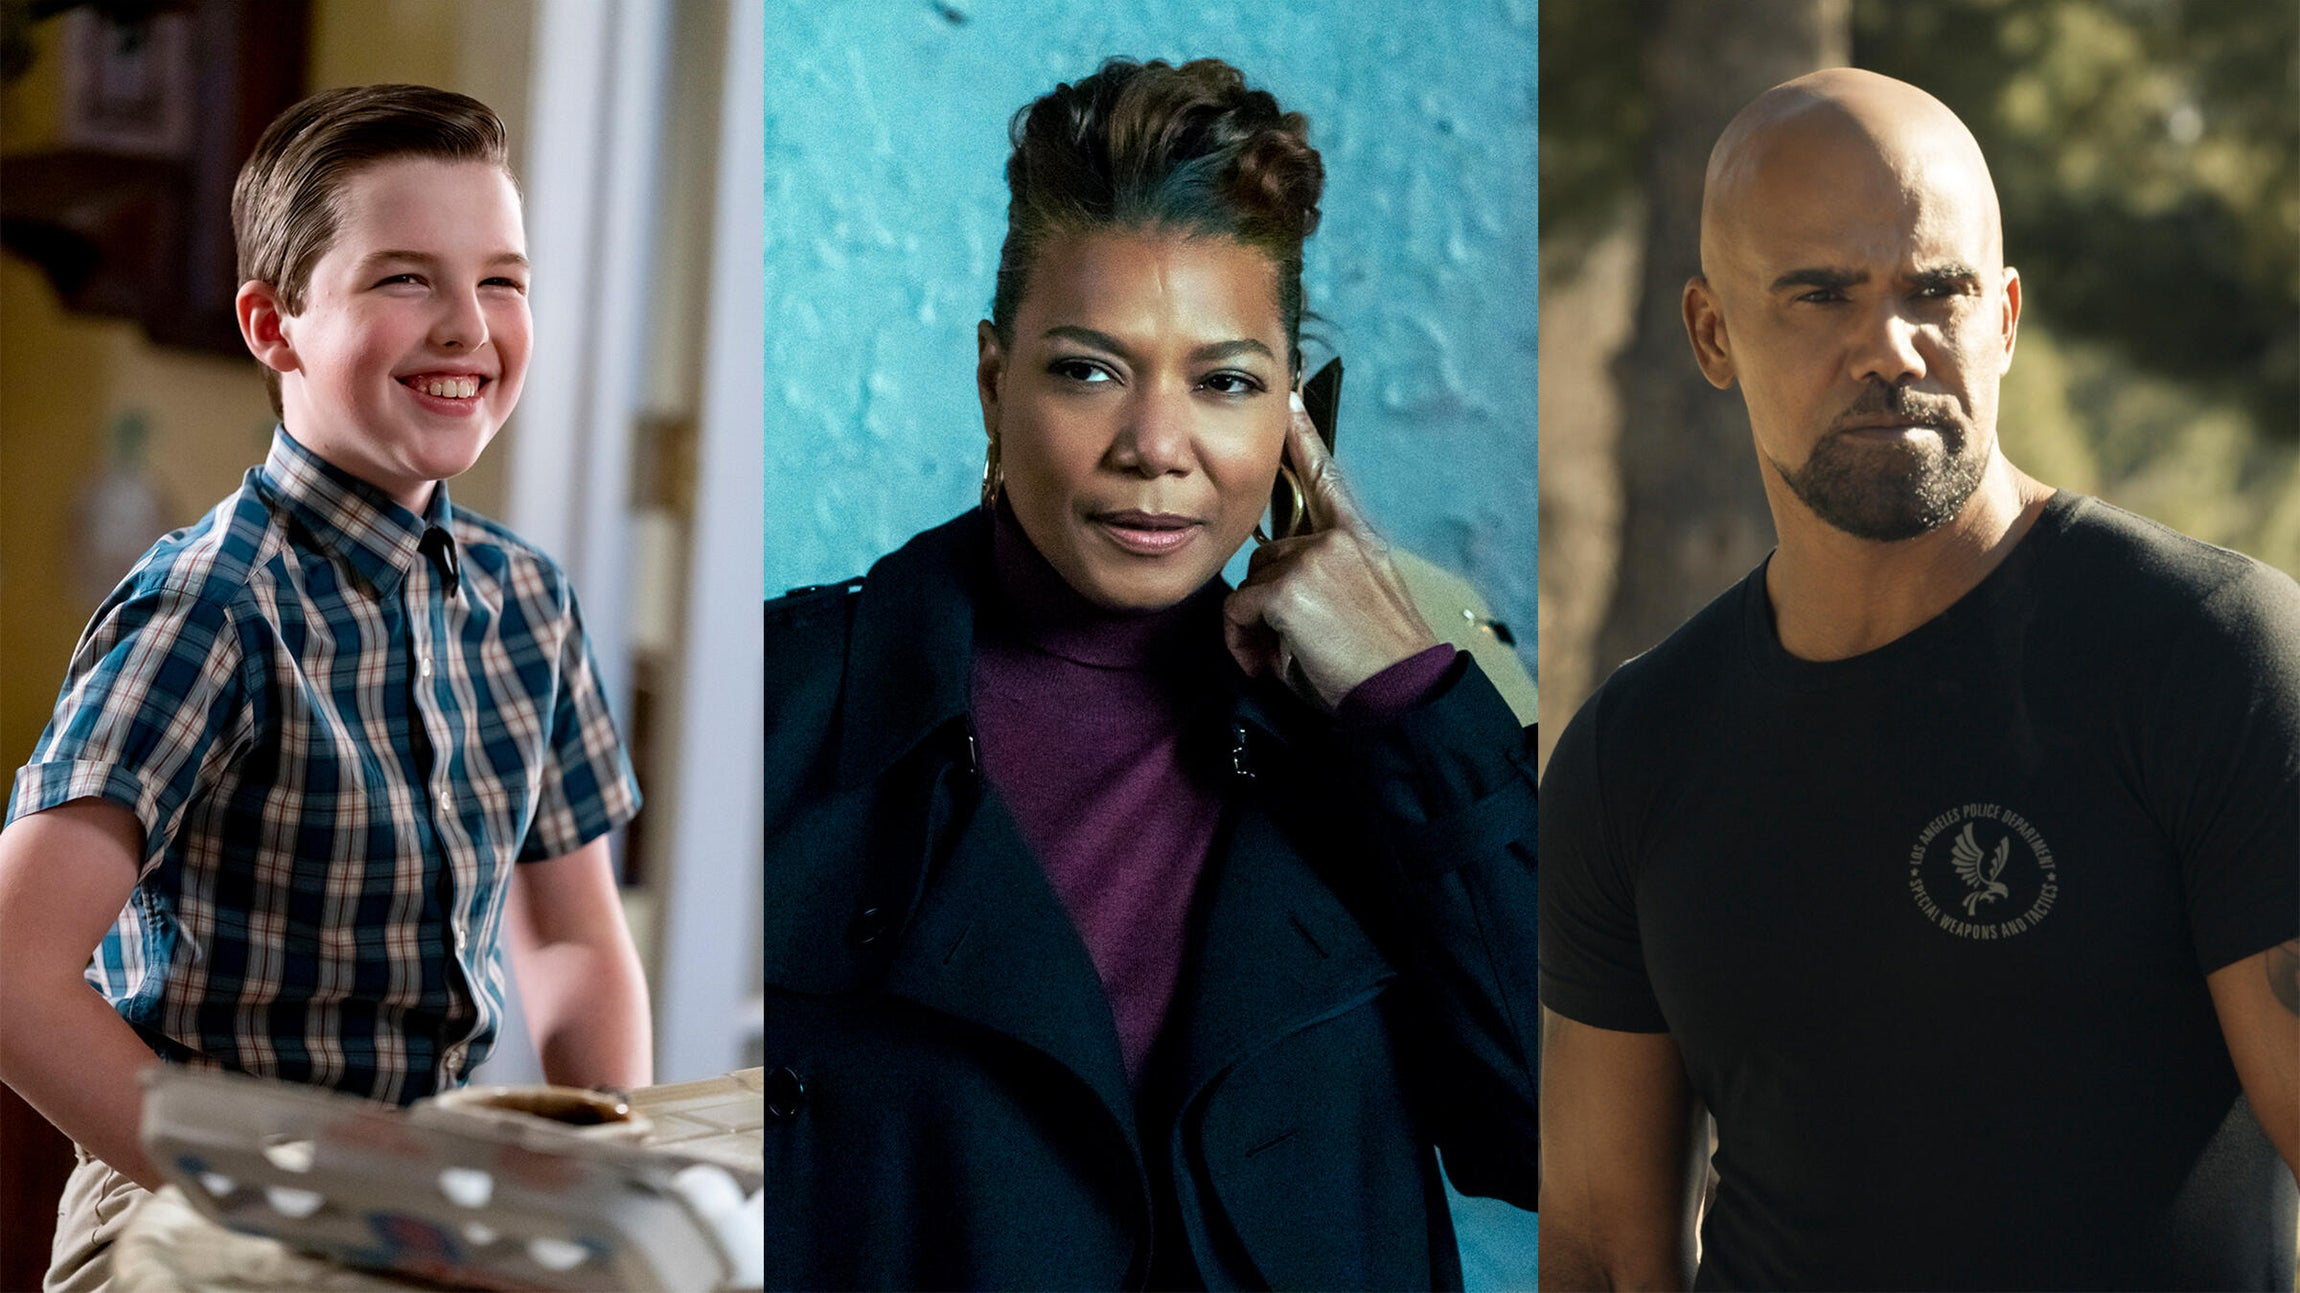 Iain Armitage, Young Sheldon/ Queen Latifah, The Equalizer/ Shemar Moore, S.W.A.T.